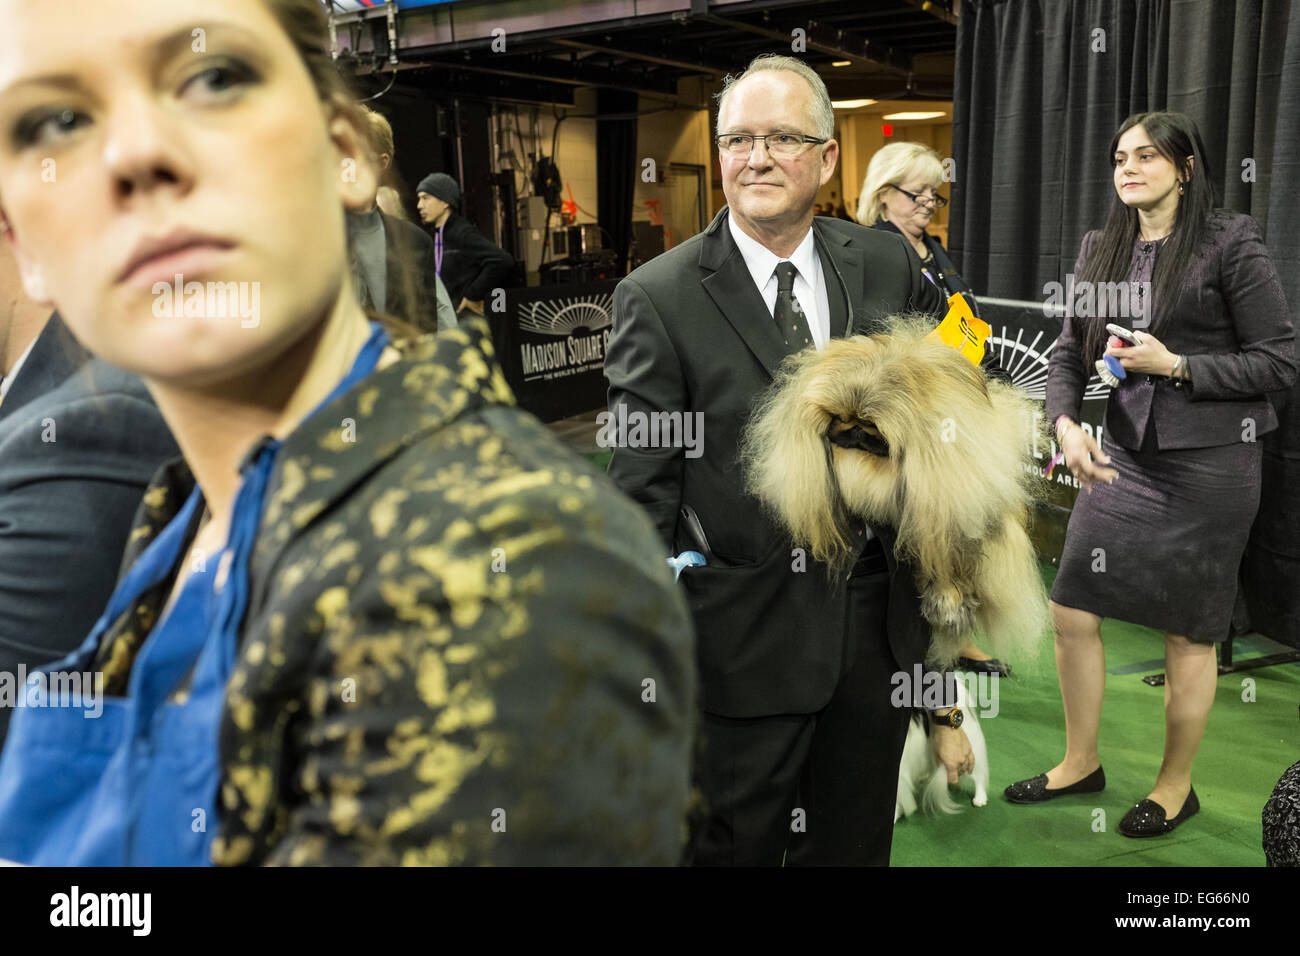 New York, NY, USA. 16th Feb, 2015. Pekingese Pequest General Tso under the arm of his handler before entering the Stock Photo